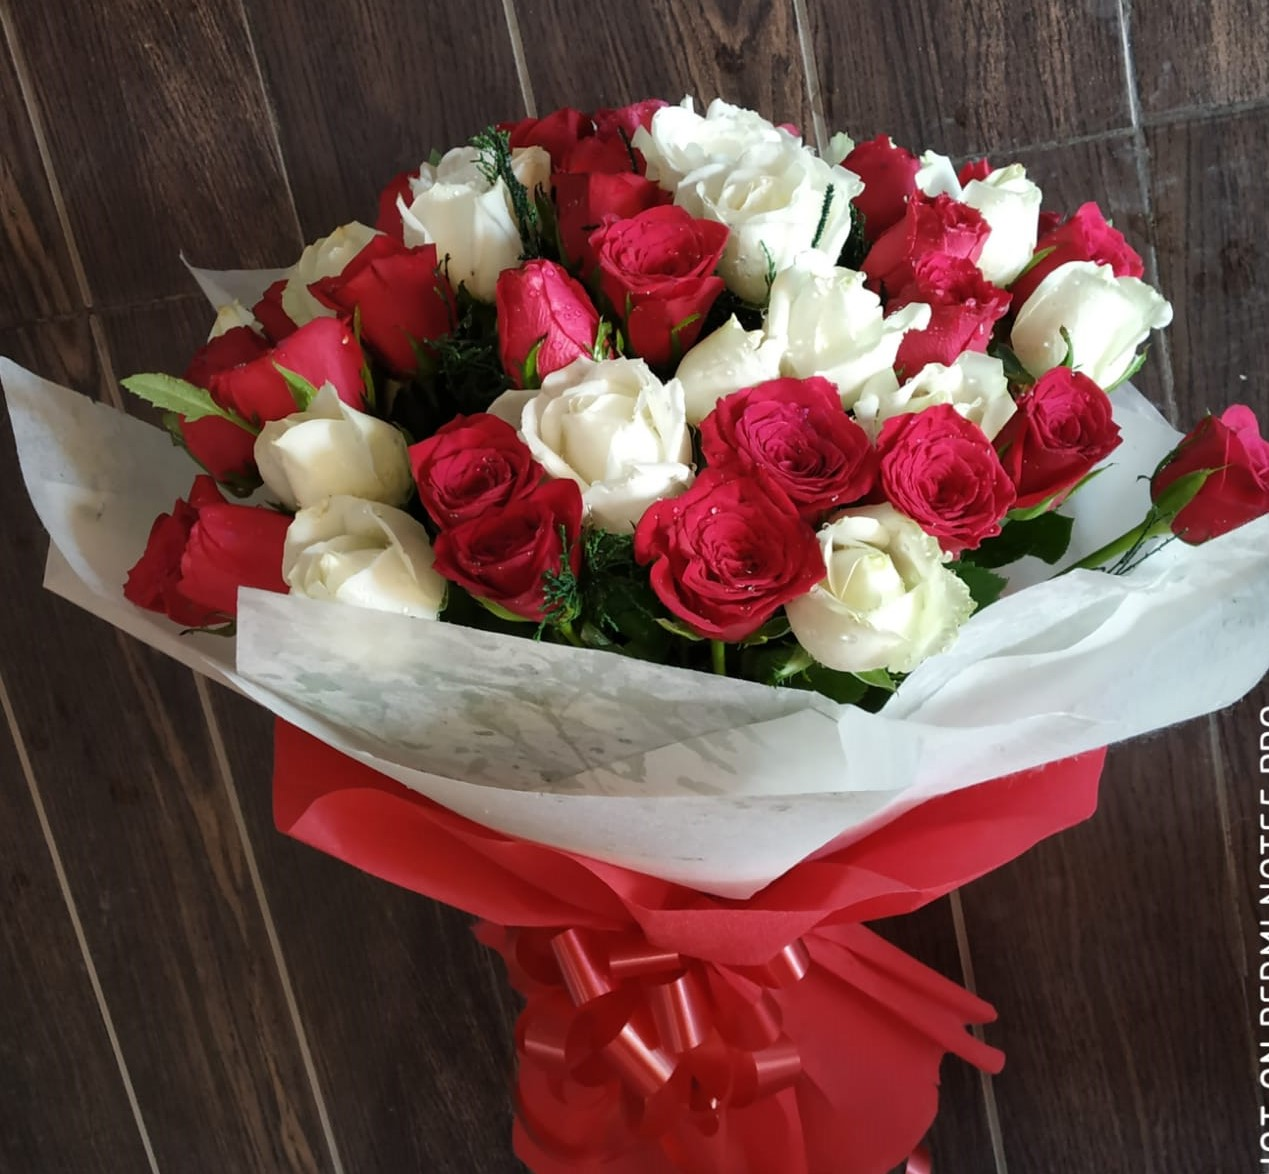 Cake Delivery in DLF Phase 1 GurgaonRed & White Roses in Duble Layer Packing